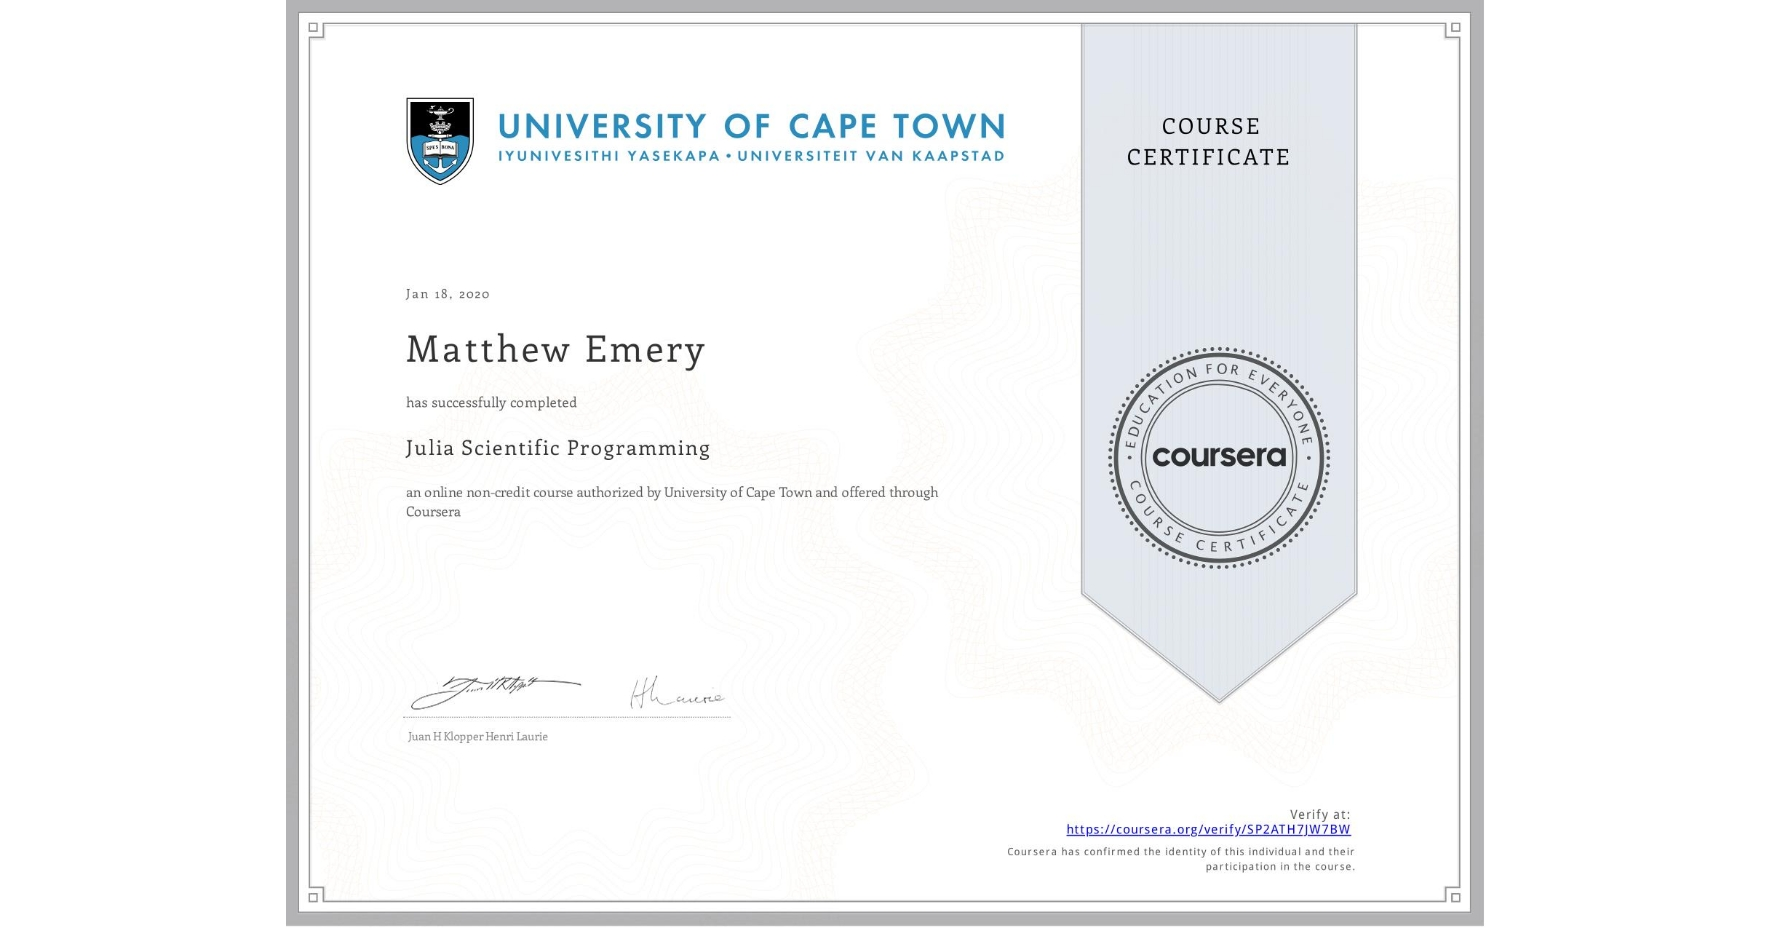 View certificate for Matthew Emery, Julia Scientific Programming, an online non-credit course authorized by University of Cape Town and offered through Coursera